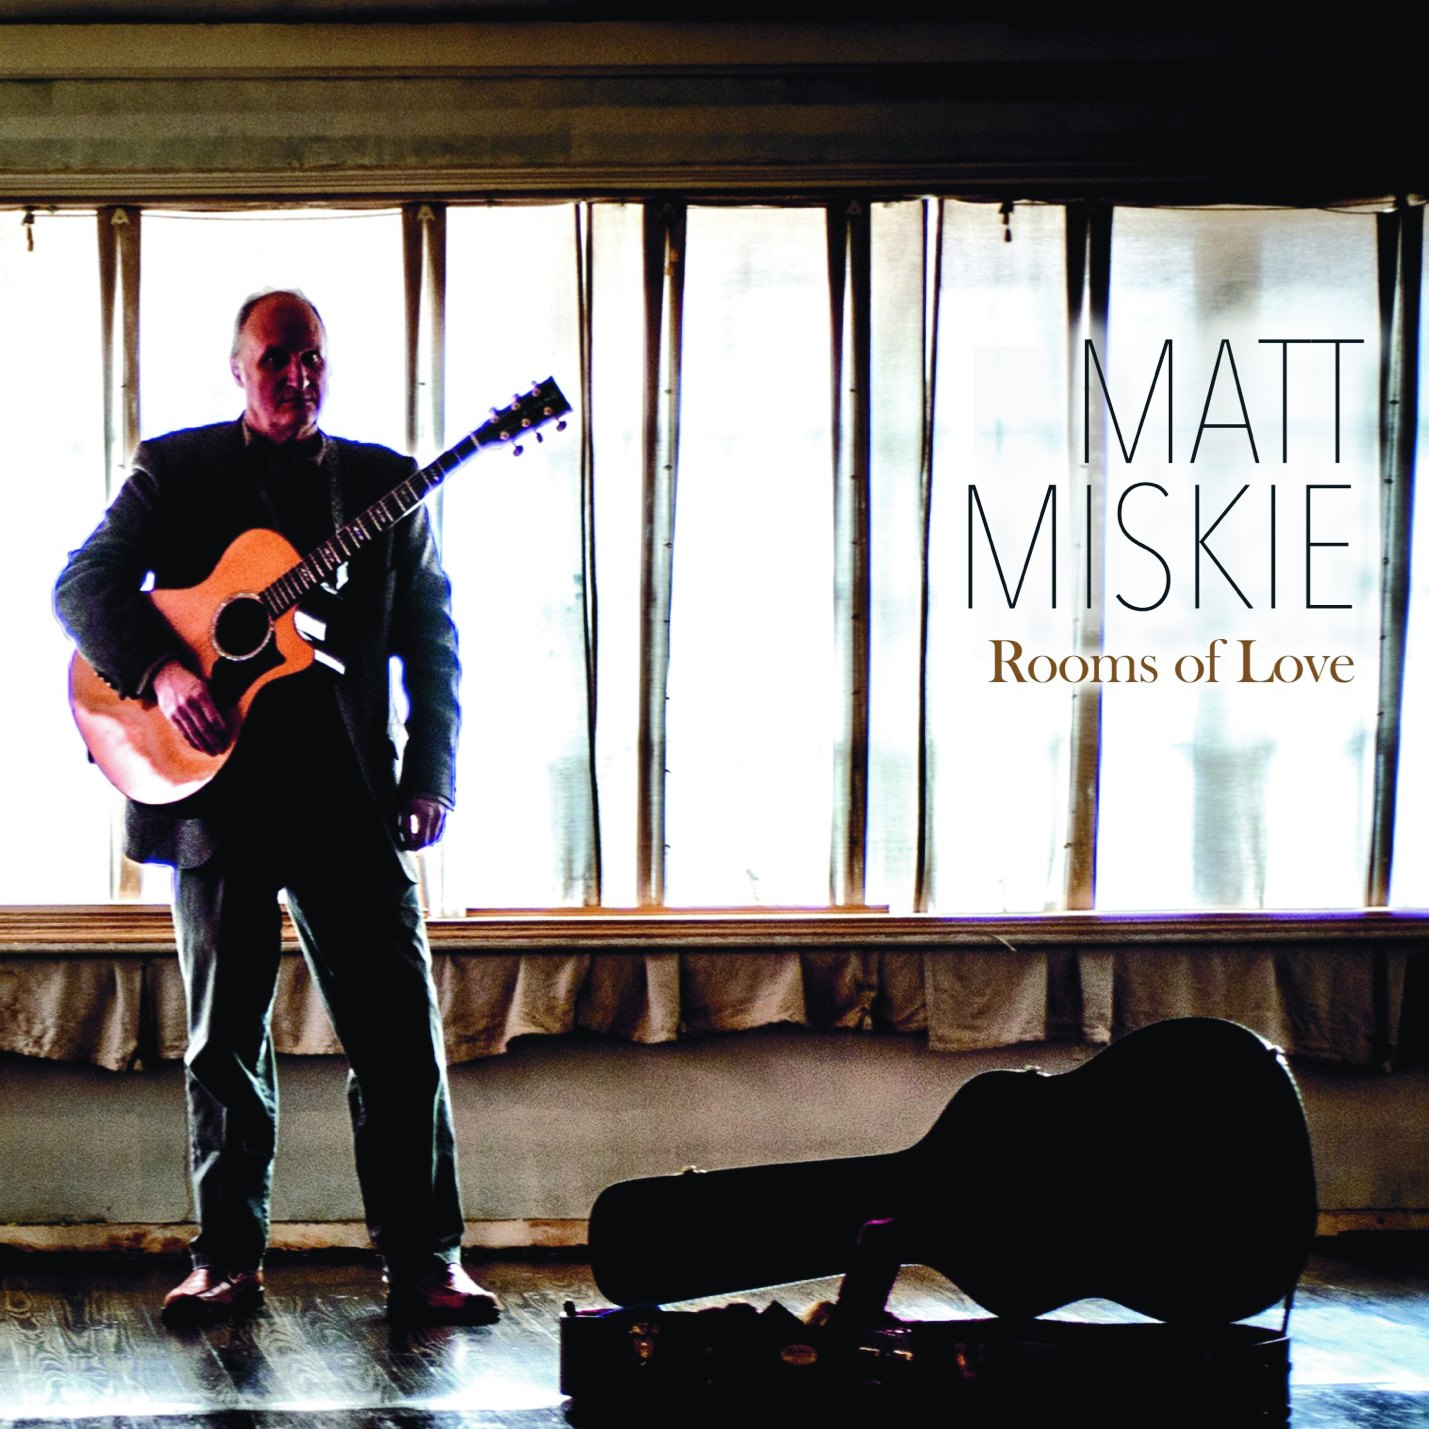 Live Music- Matt Miskie